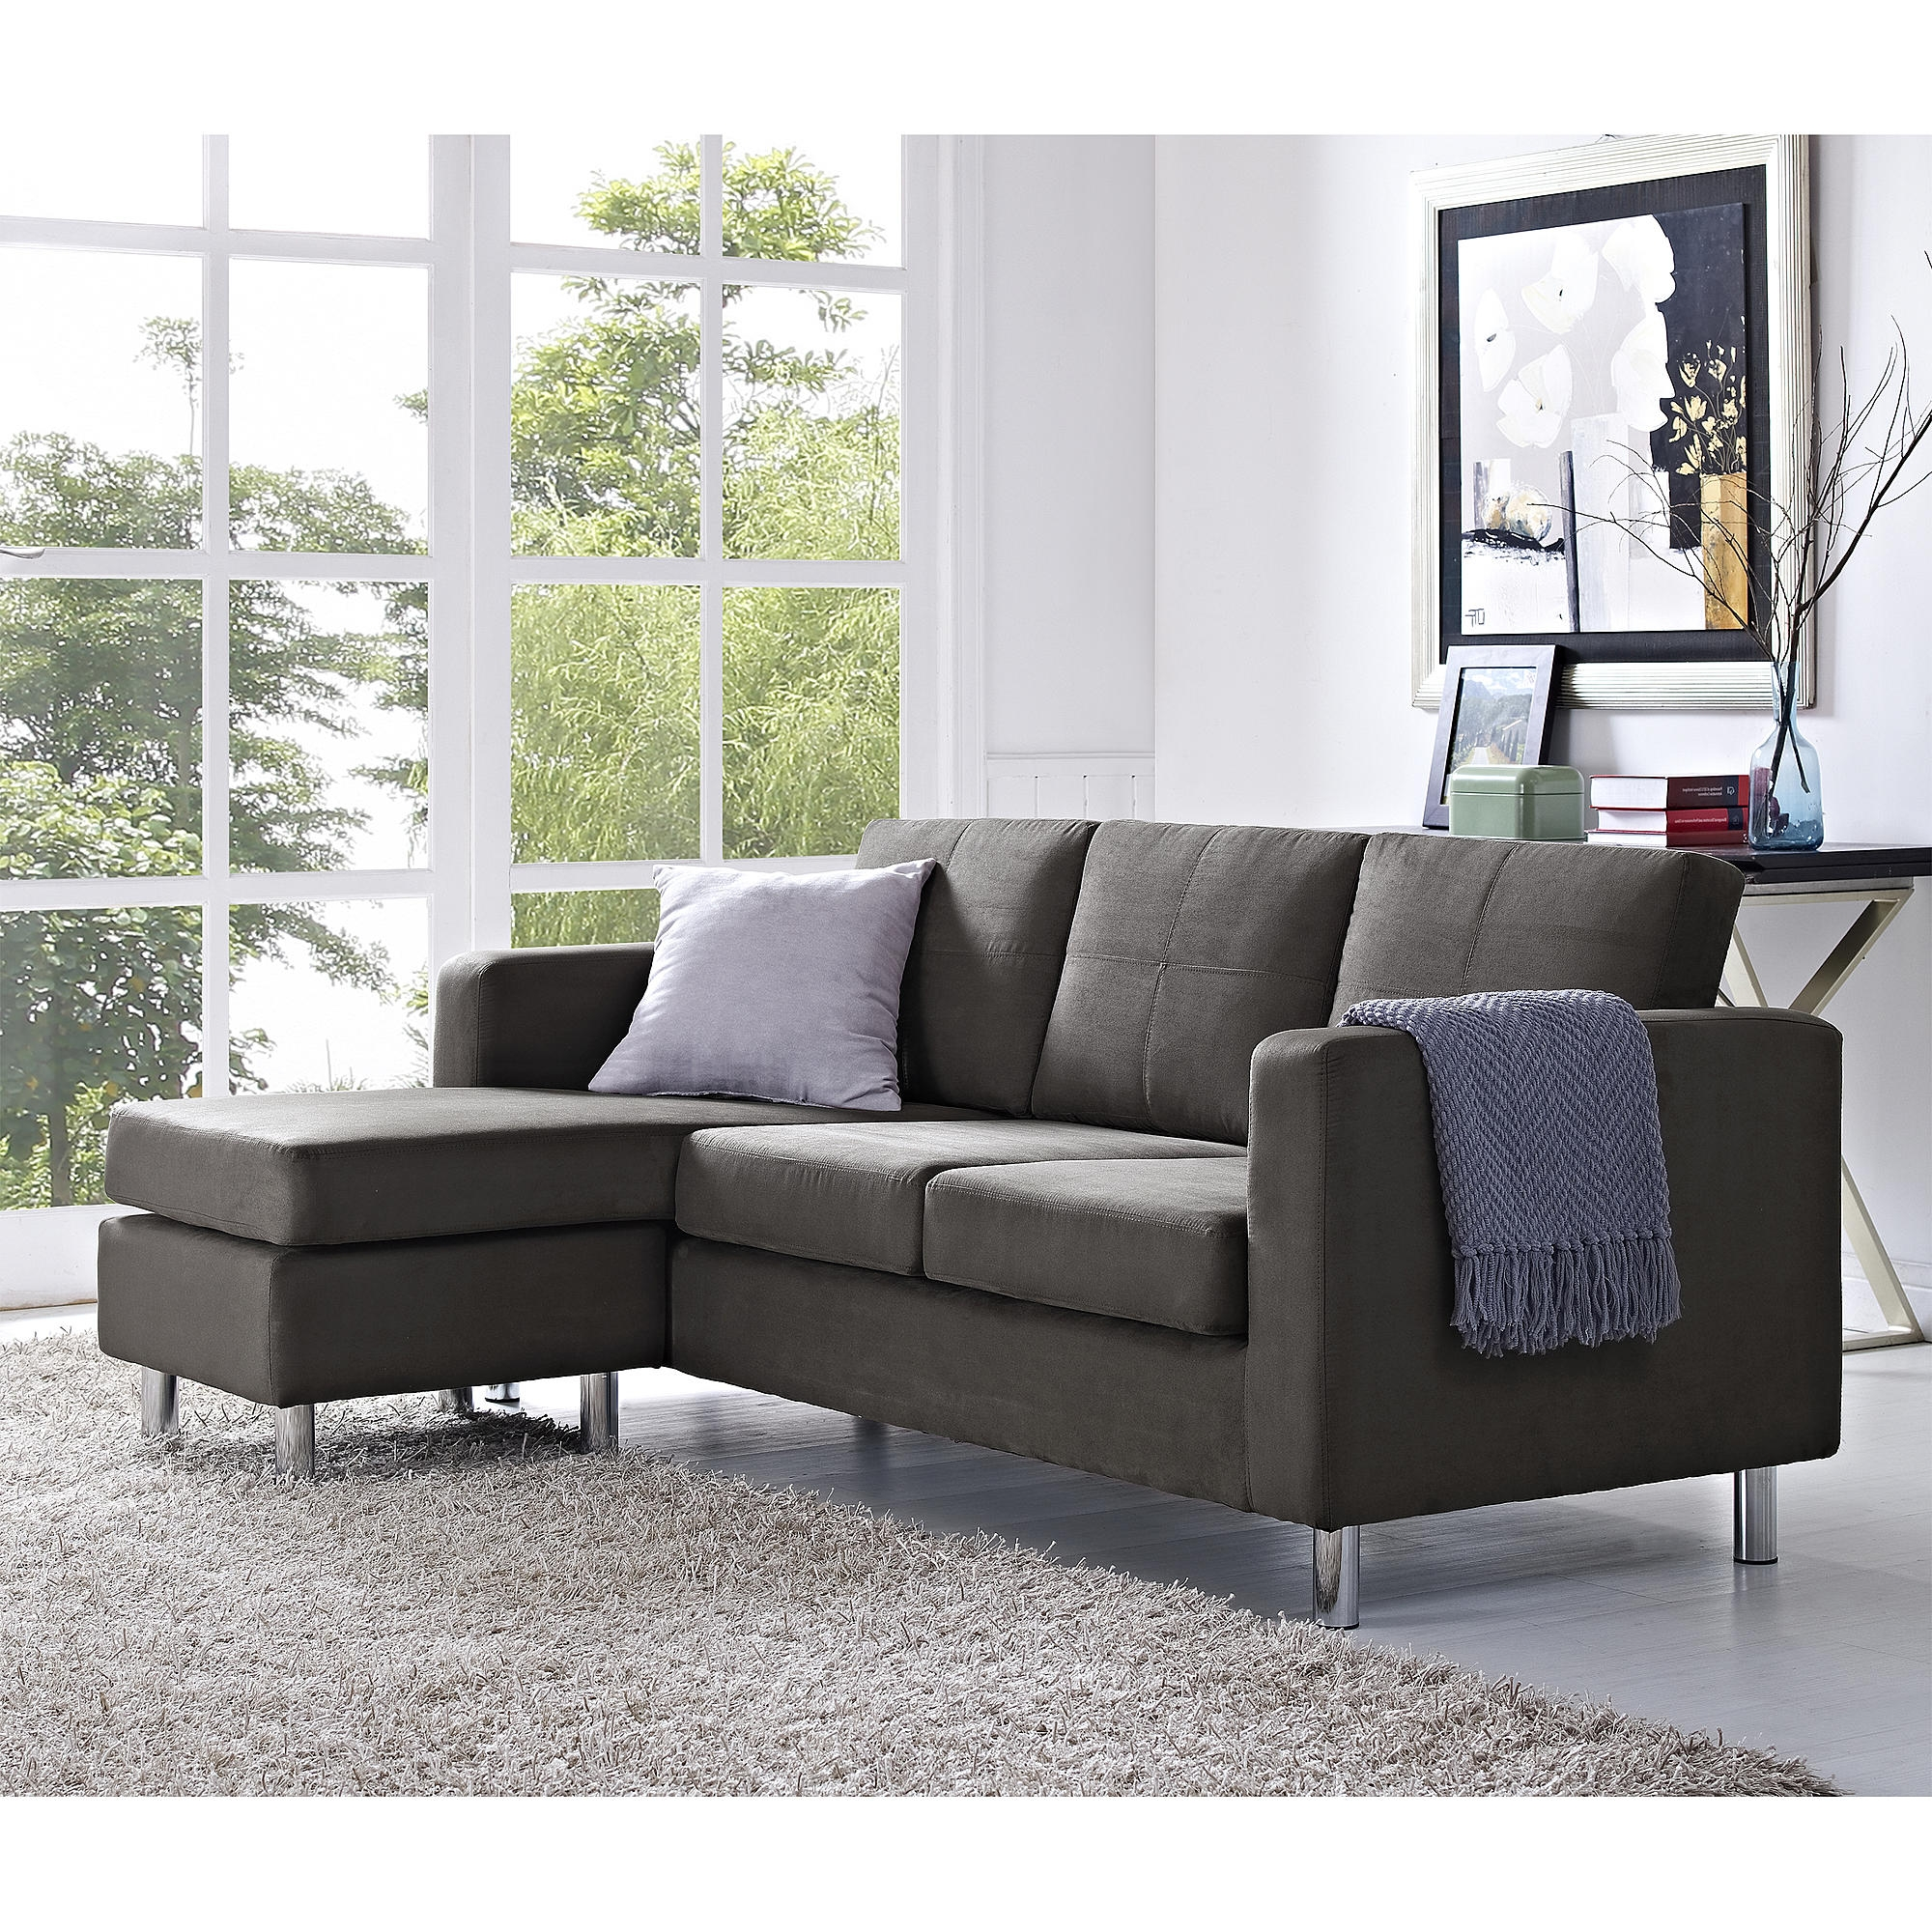 15 collection of durable sectional sofa sofa ideas - Sofa small spaces collection ...